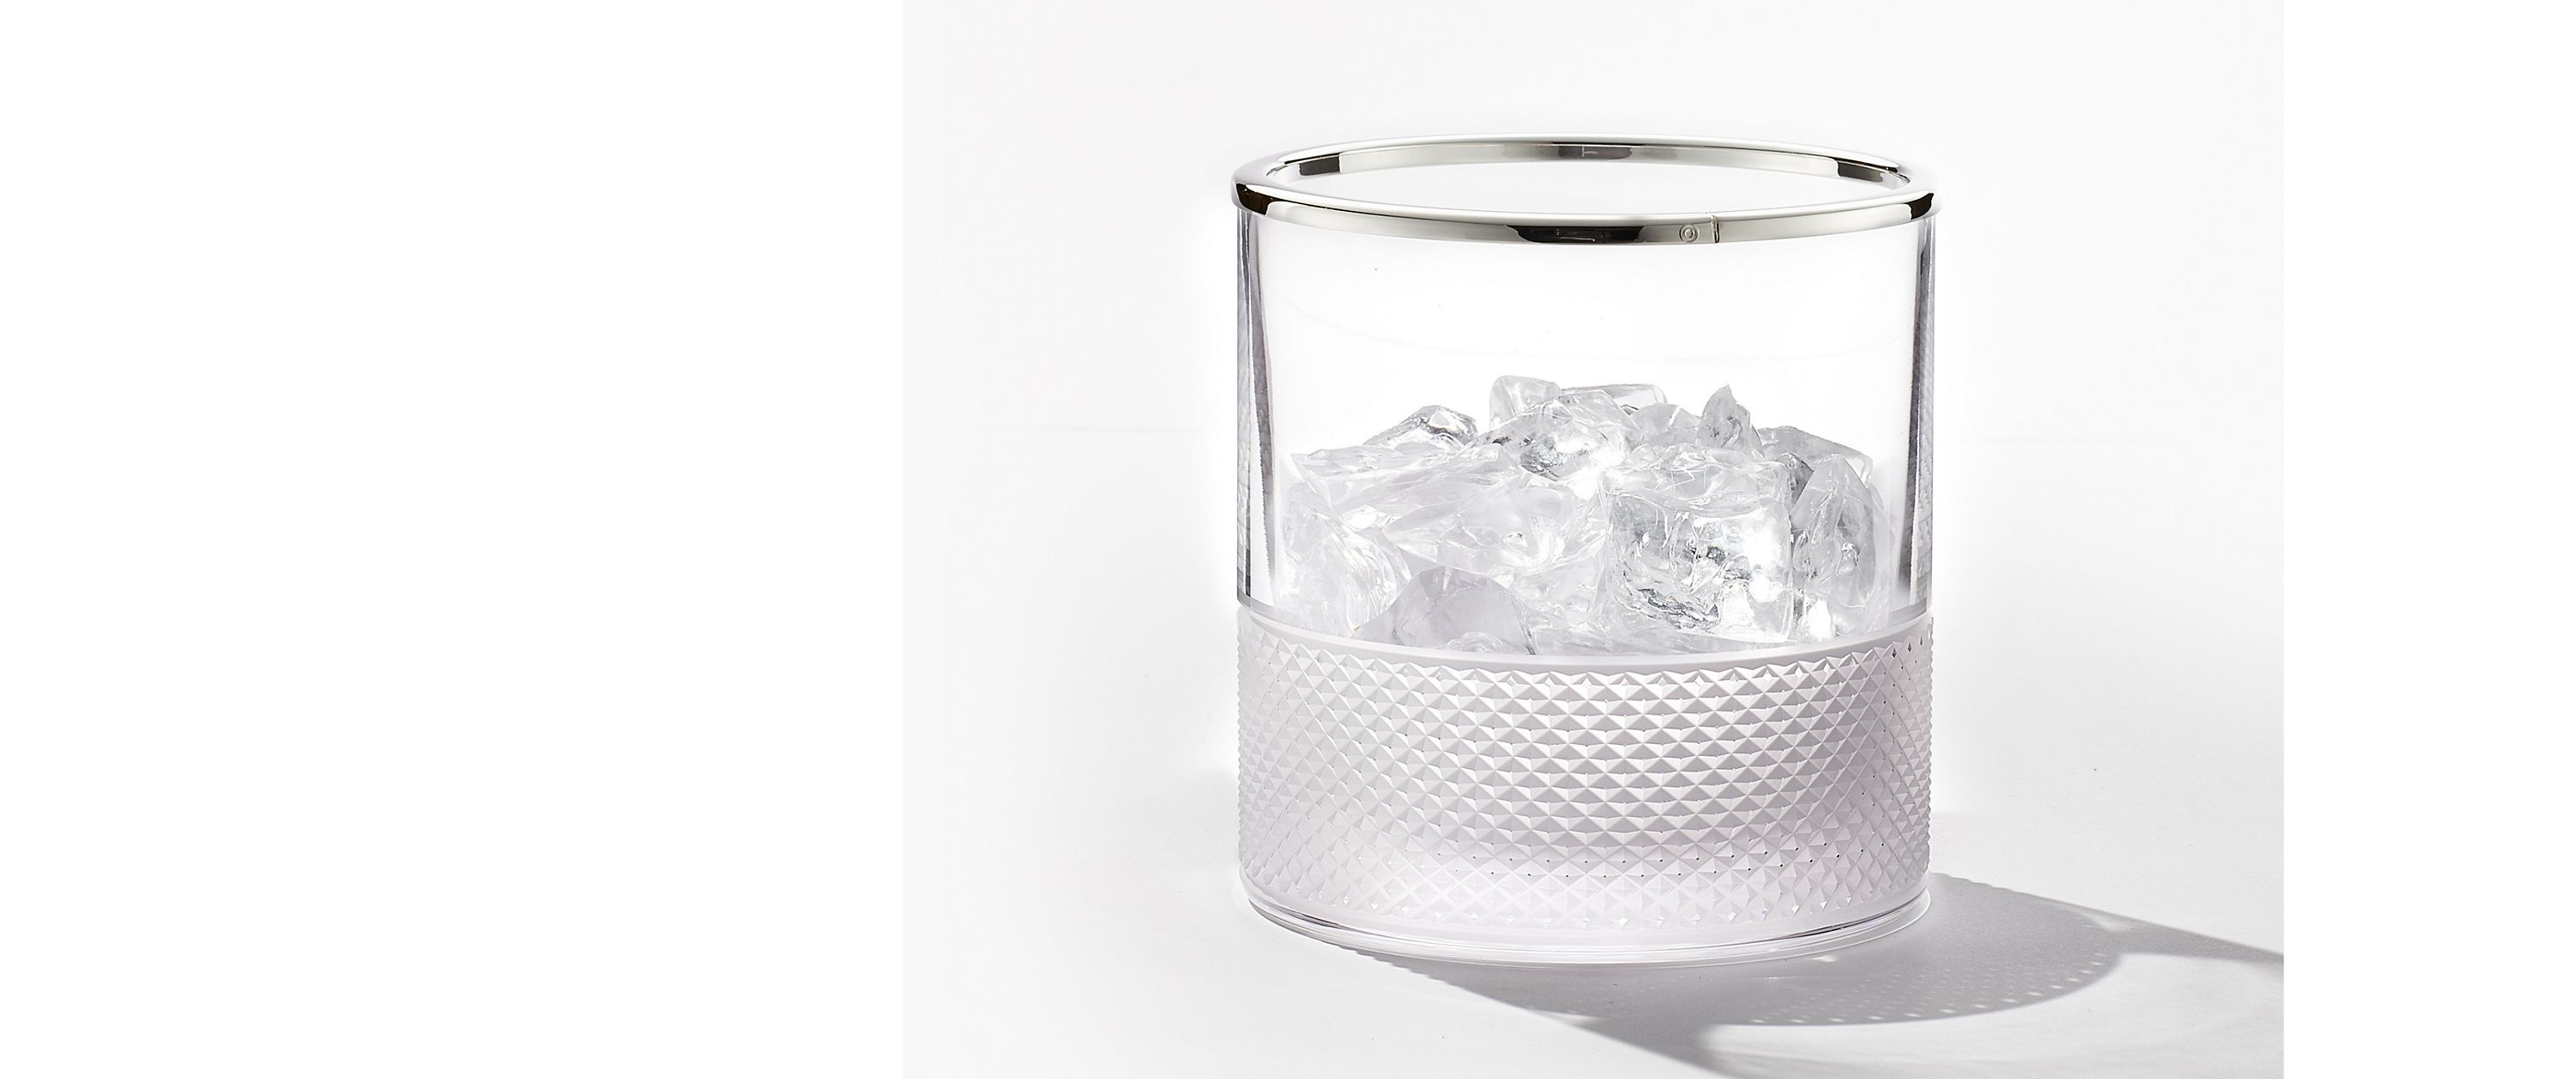 Tiffany & Co. Ice Bucket